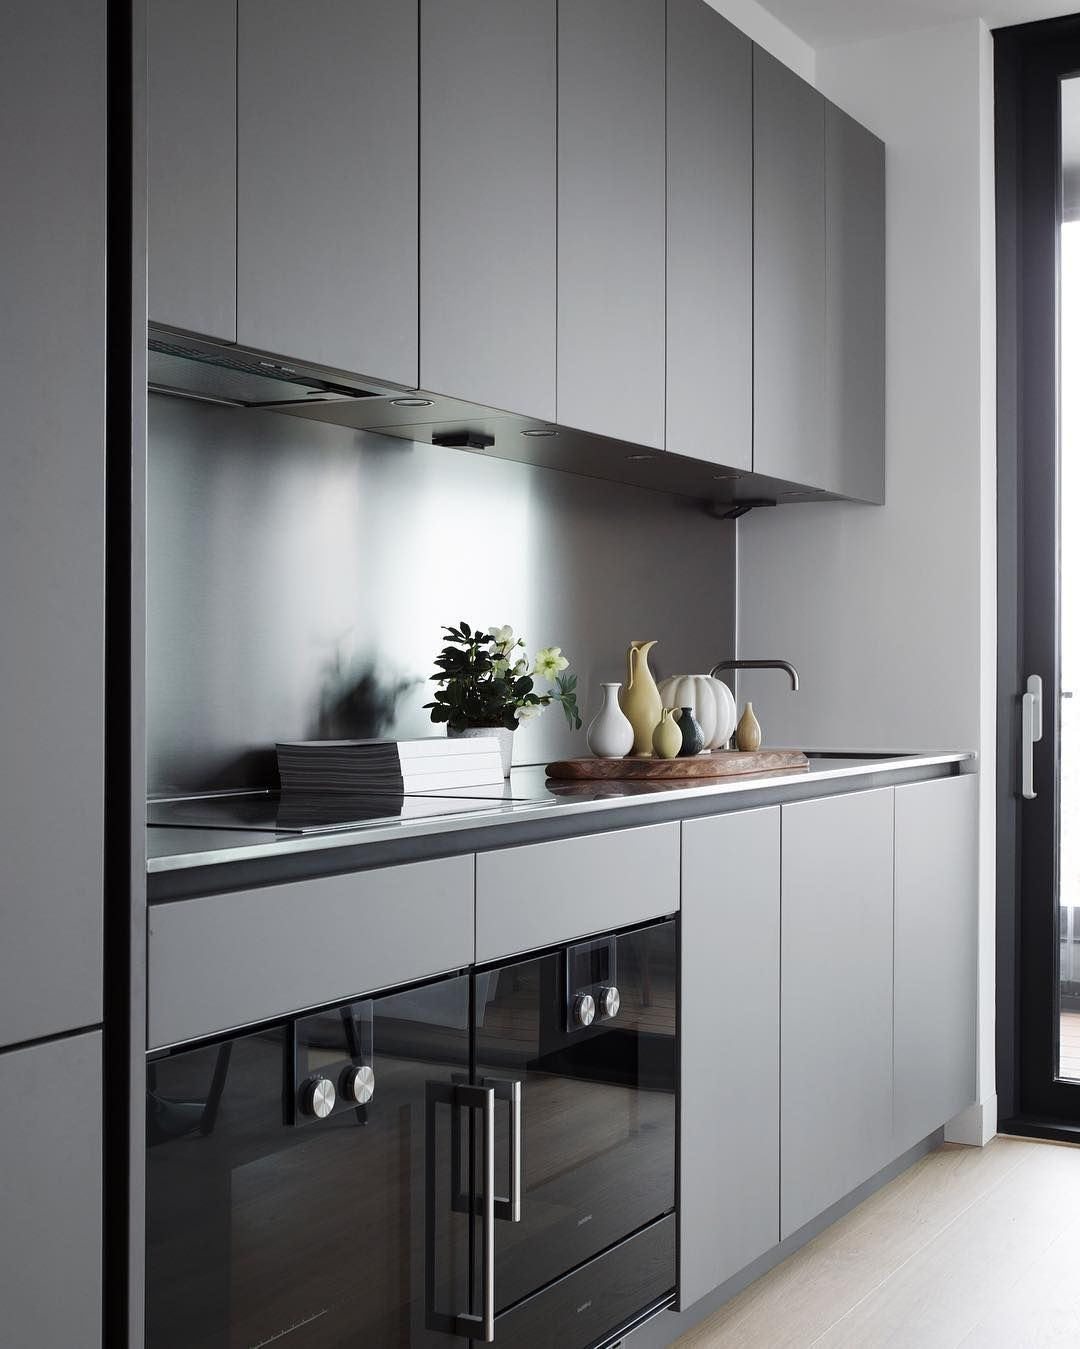 grey kitchen | Kichern | Pinterest | Cocinas, Electrodomésticos ...